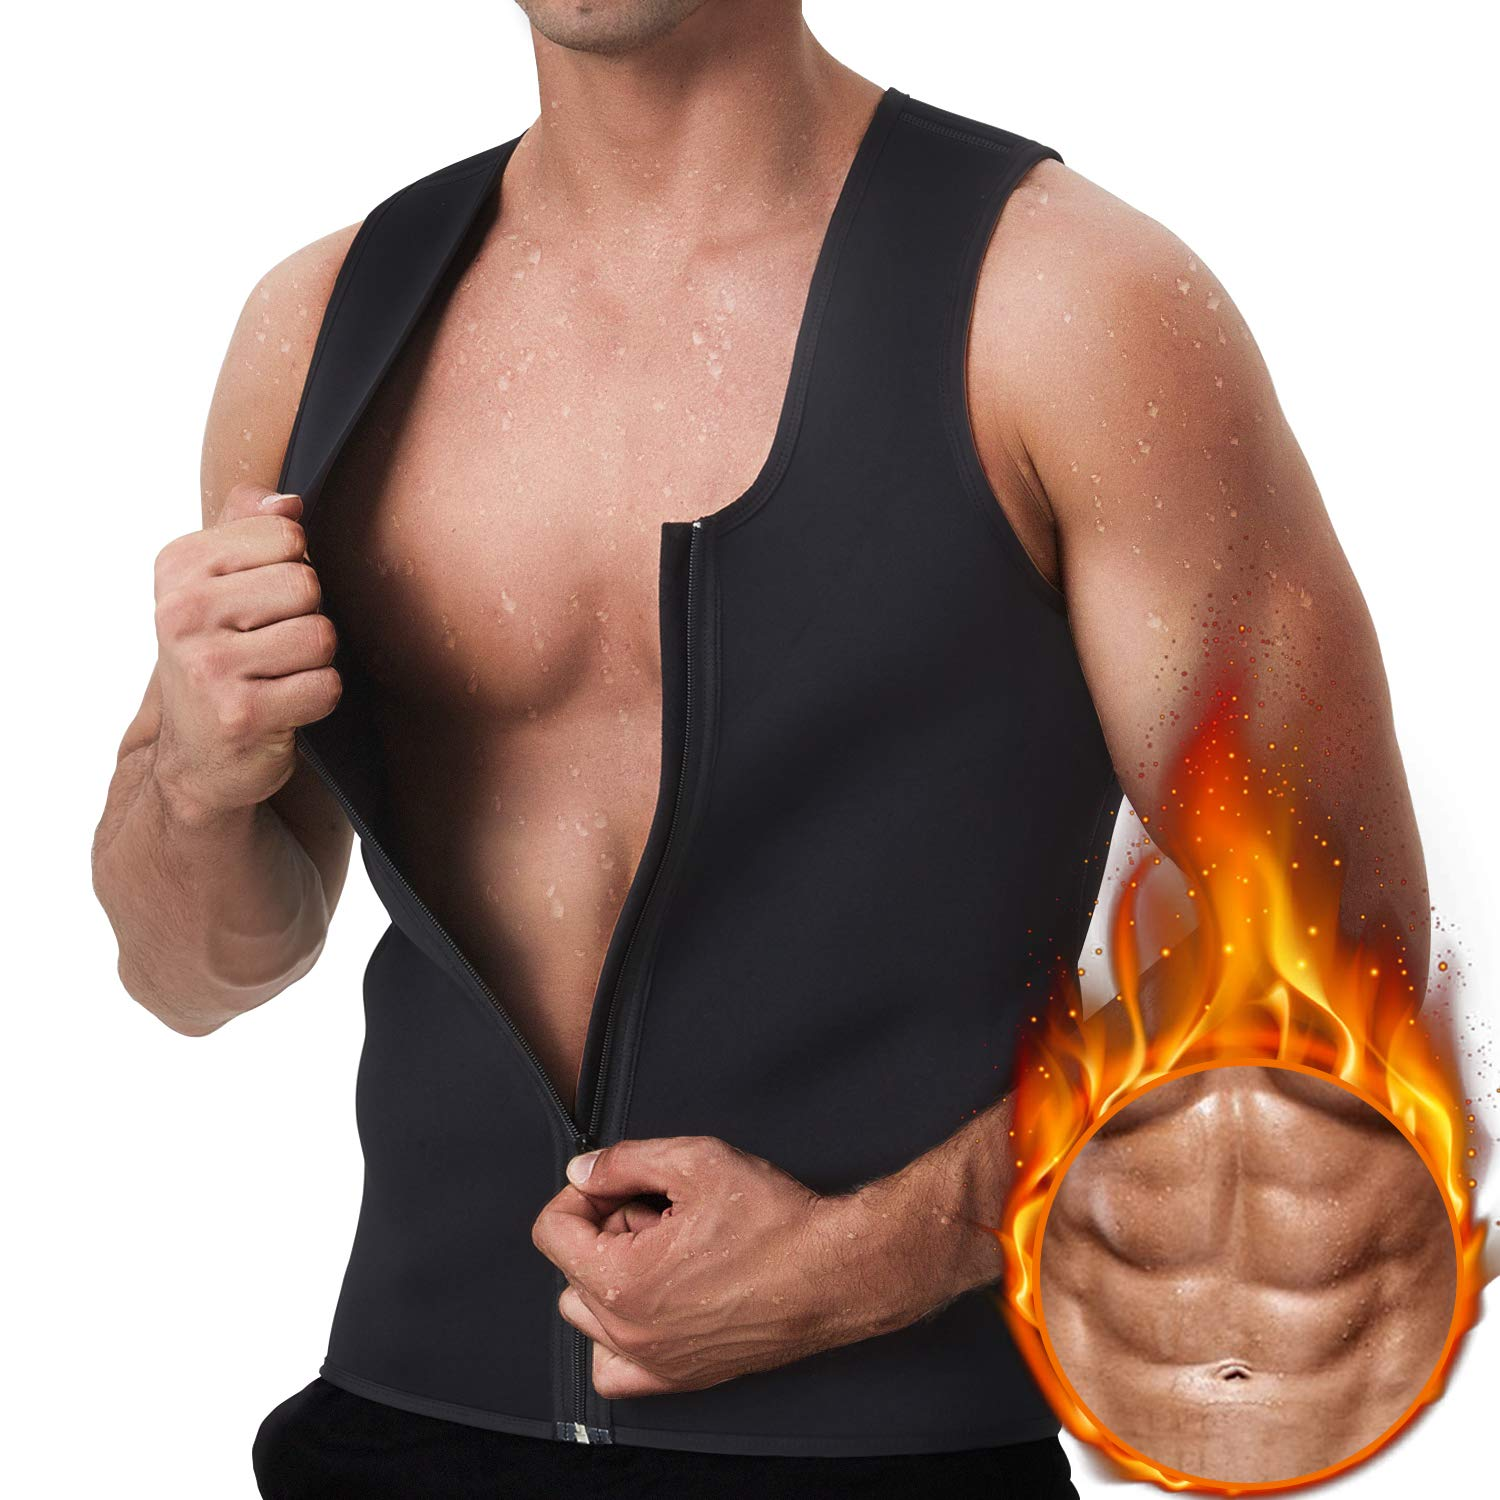 GKVK Men Waist Trainer Vest Neoprene Corset Compression Sweat Body Shaper Slimming Shirt Workout Suit